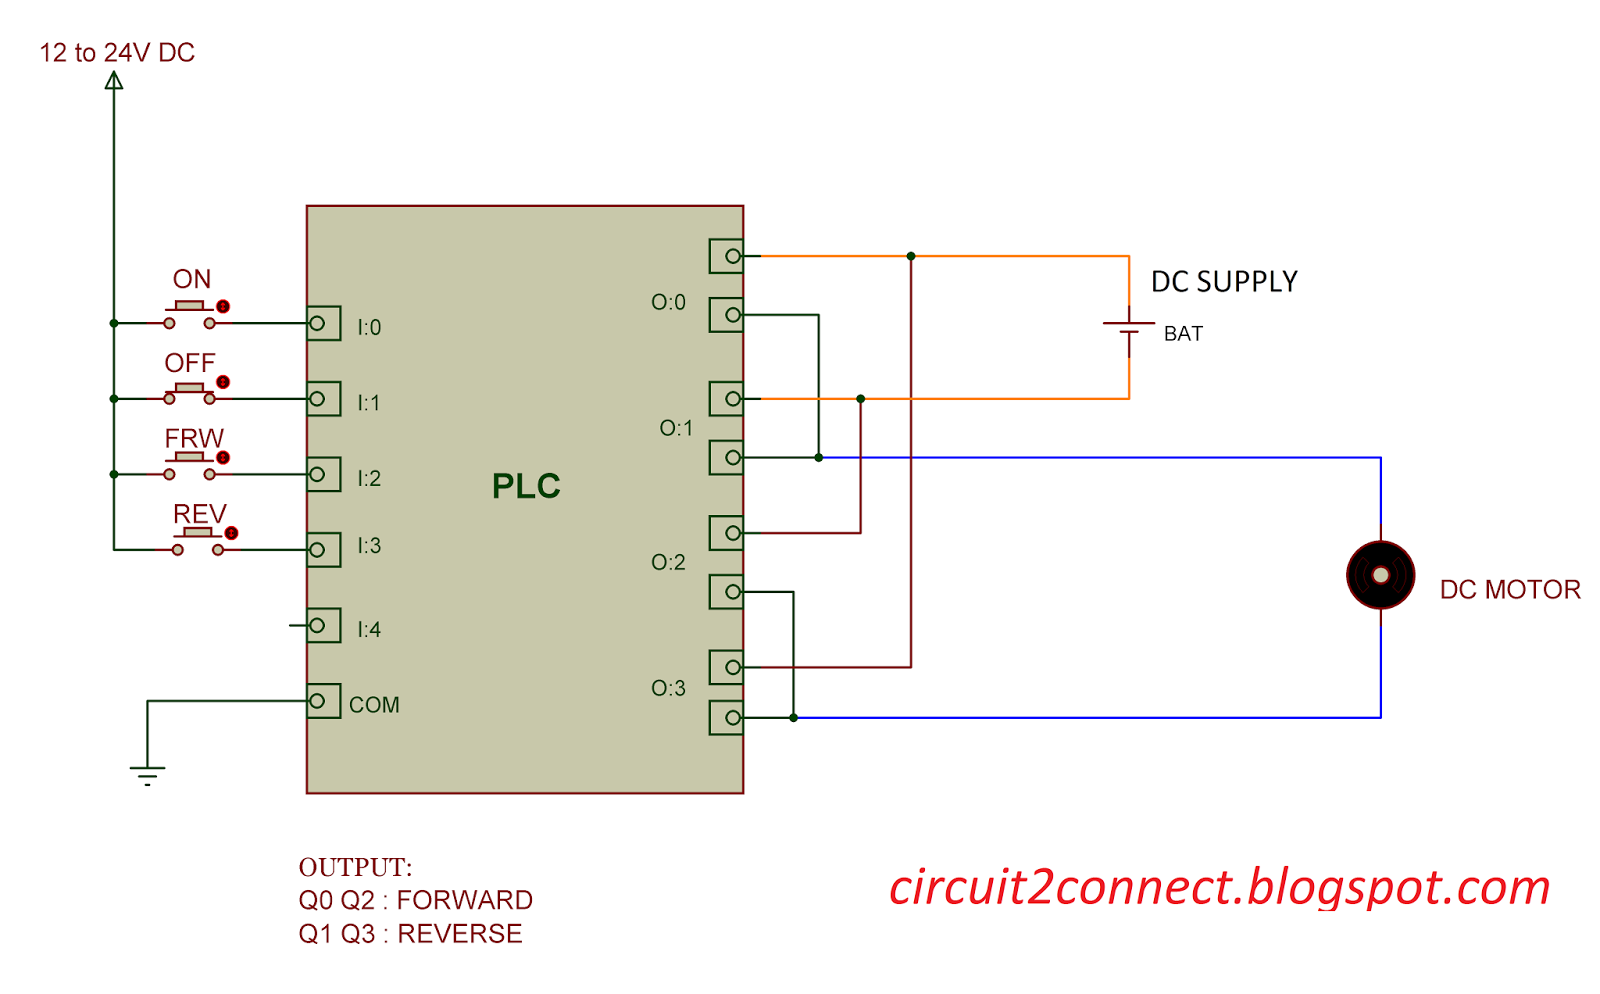 Direction Control Of Dc Motor Using Plc Circuit 2 Connect 3 Phase Reversing Switch Wiring Diagram Free Picture Connection Before Connecting